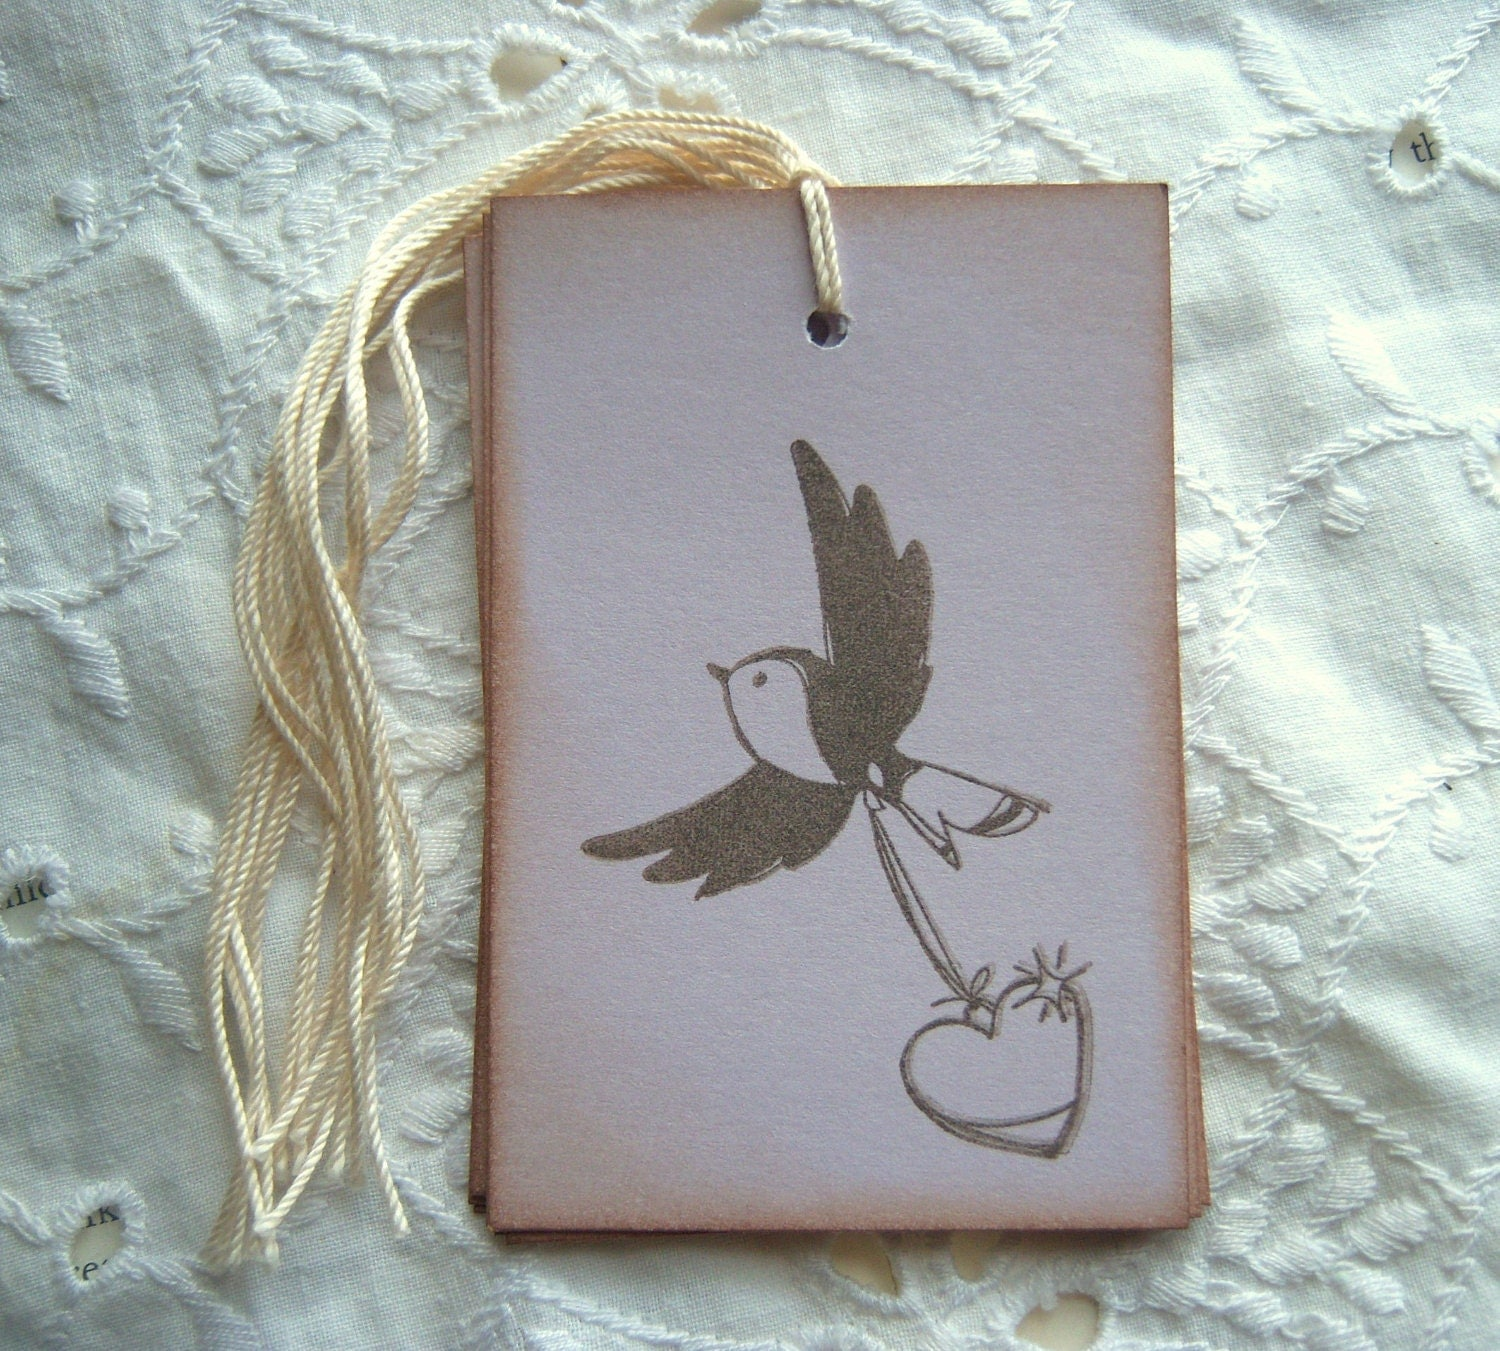 BIRD Hang Tags - Lavender, Flying, Heart, Love